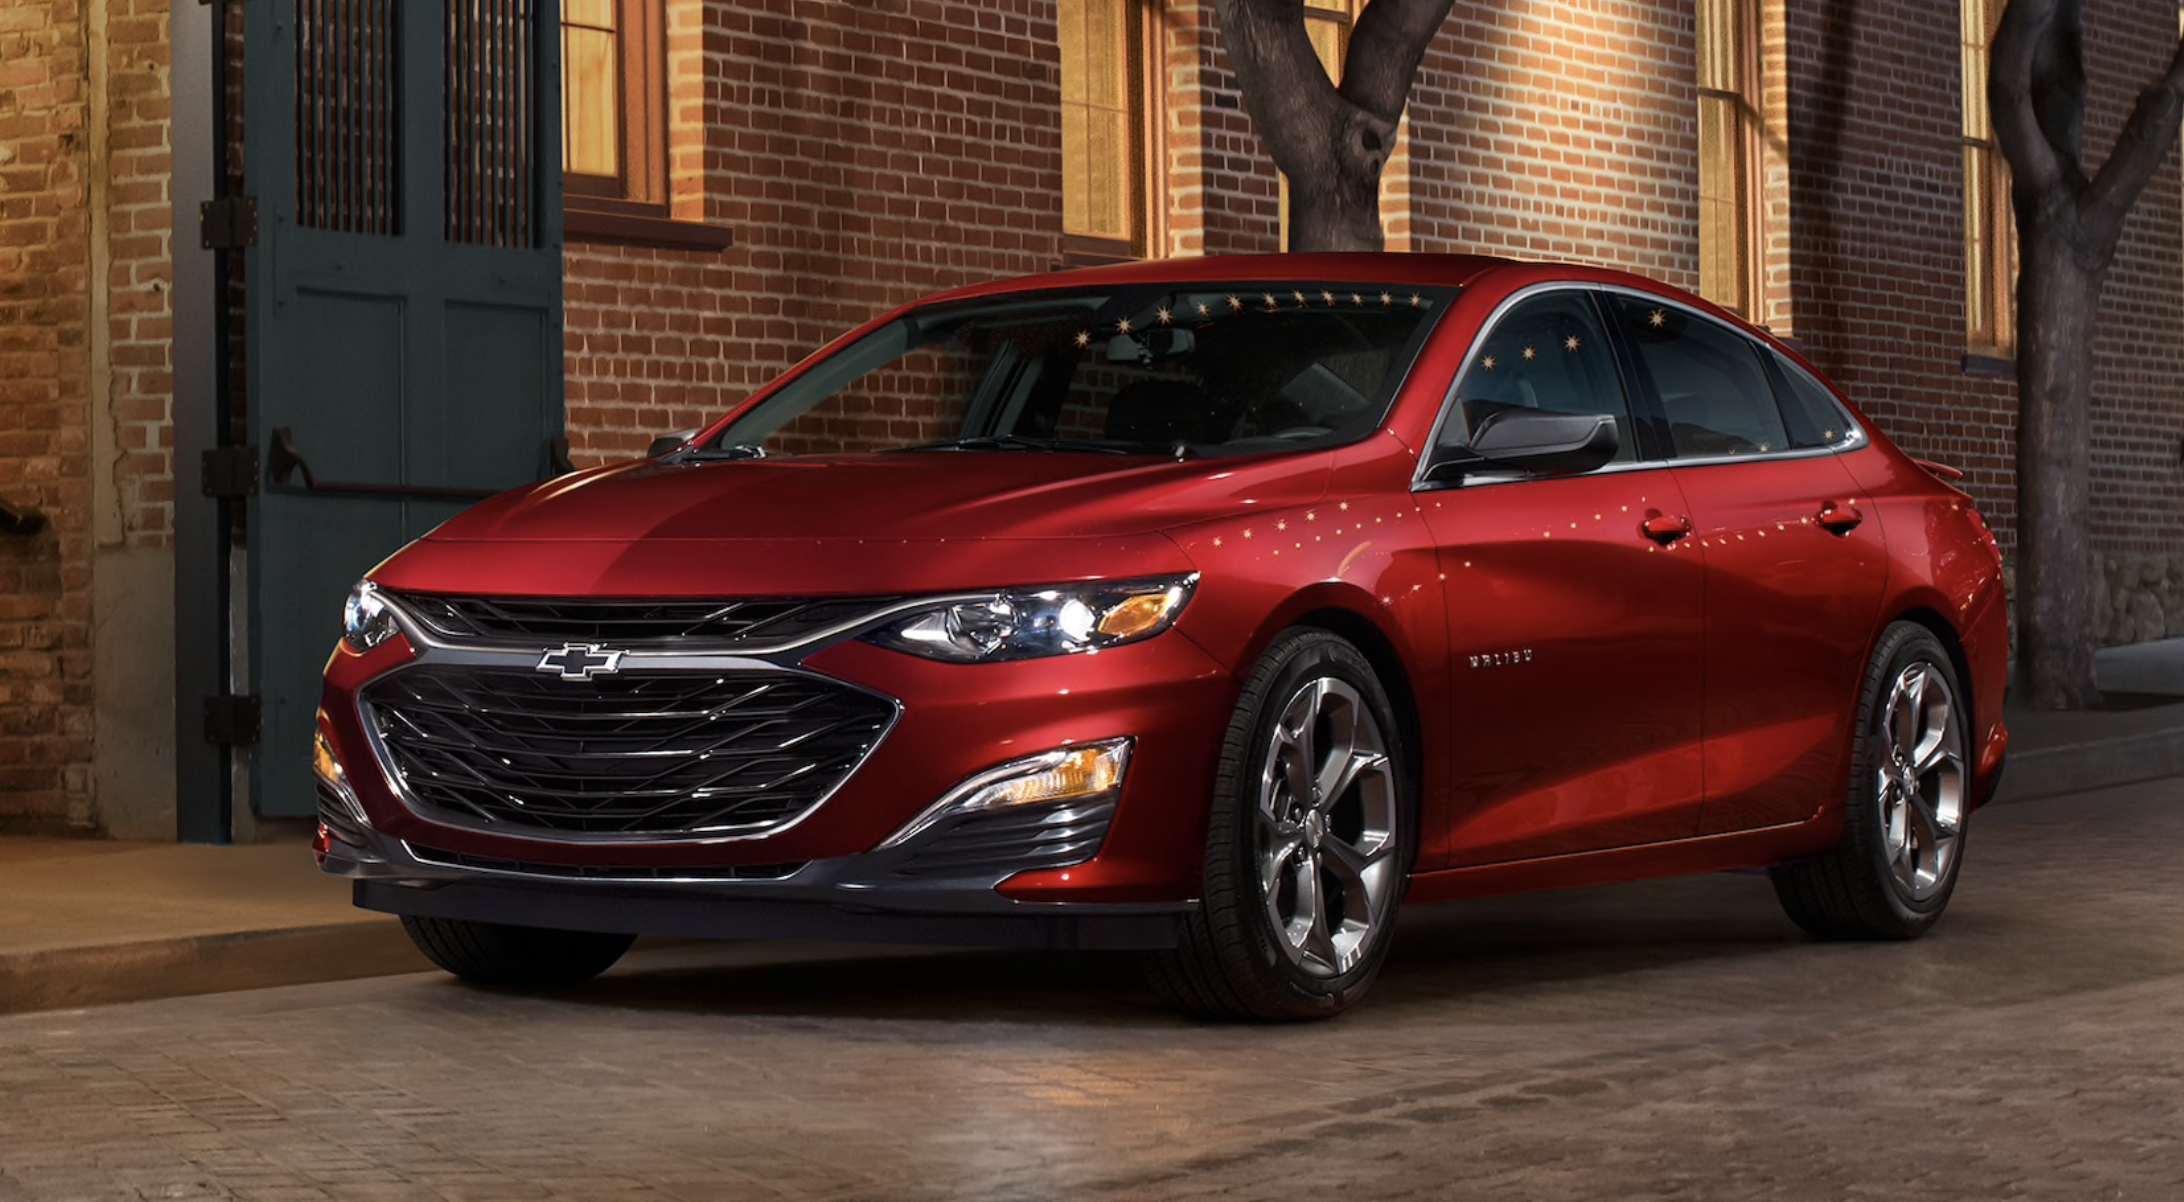 Chevrolet Malibu Hybrid Newberry